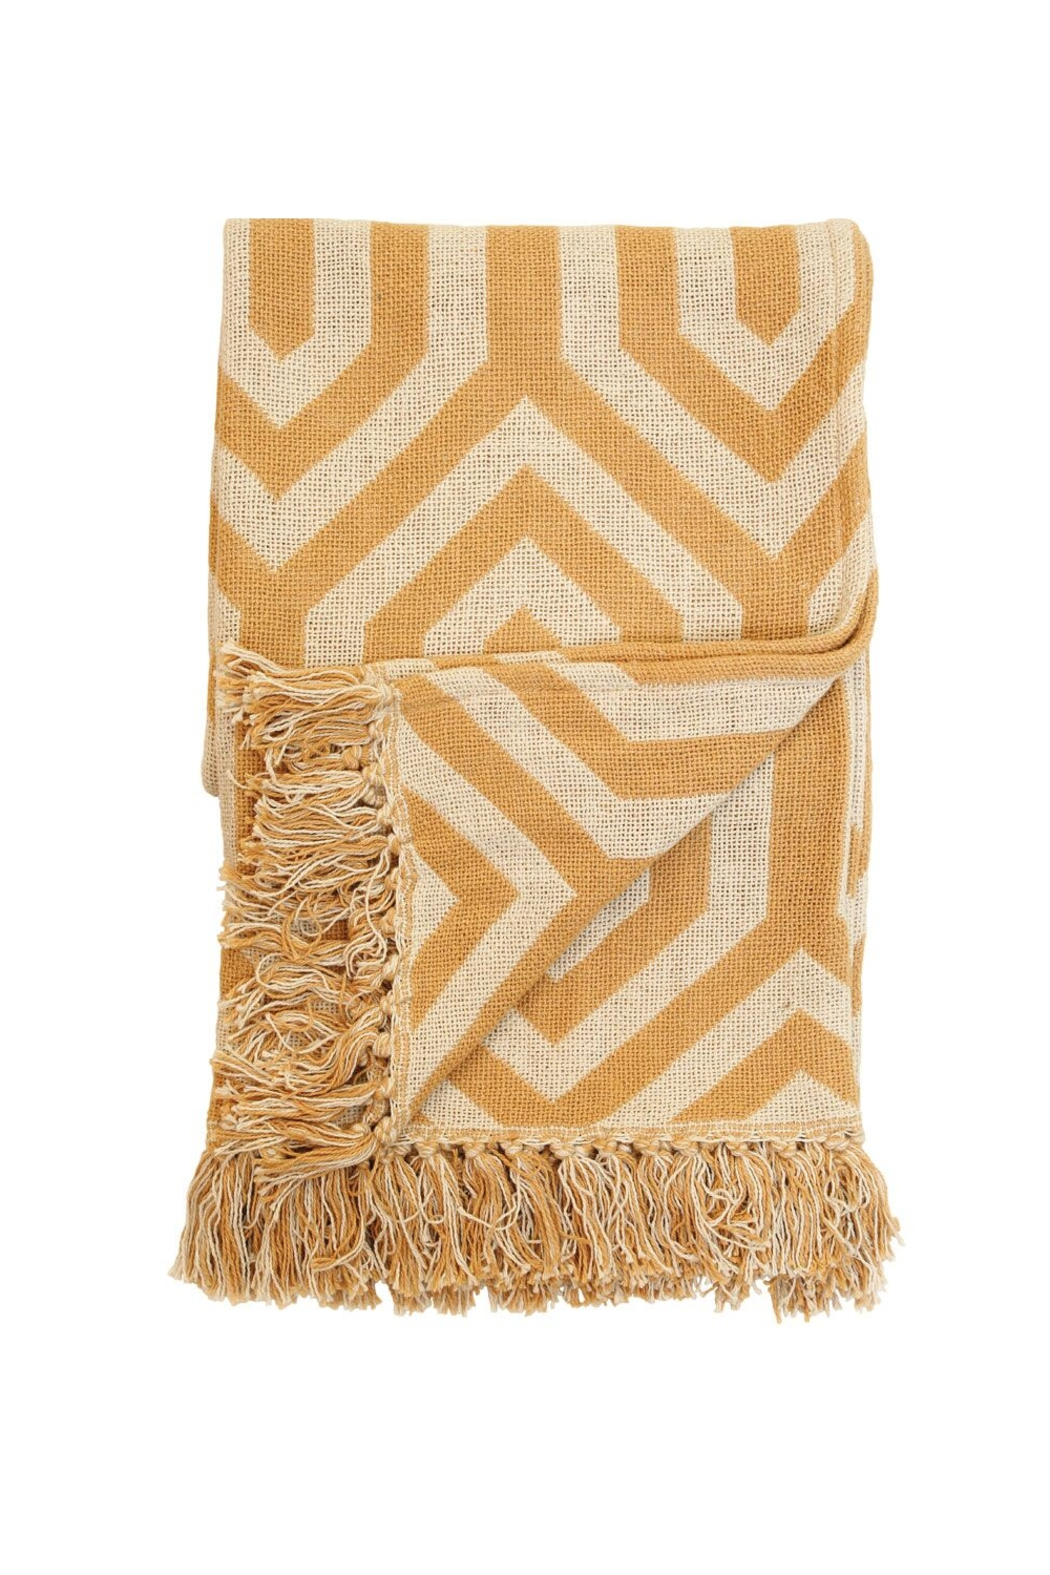 Foreside Home & Garden Hand Woven Hallie Throw - Main Image